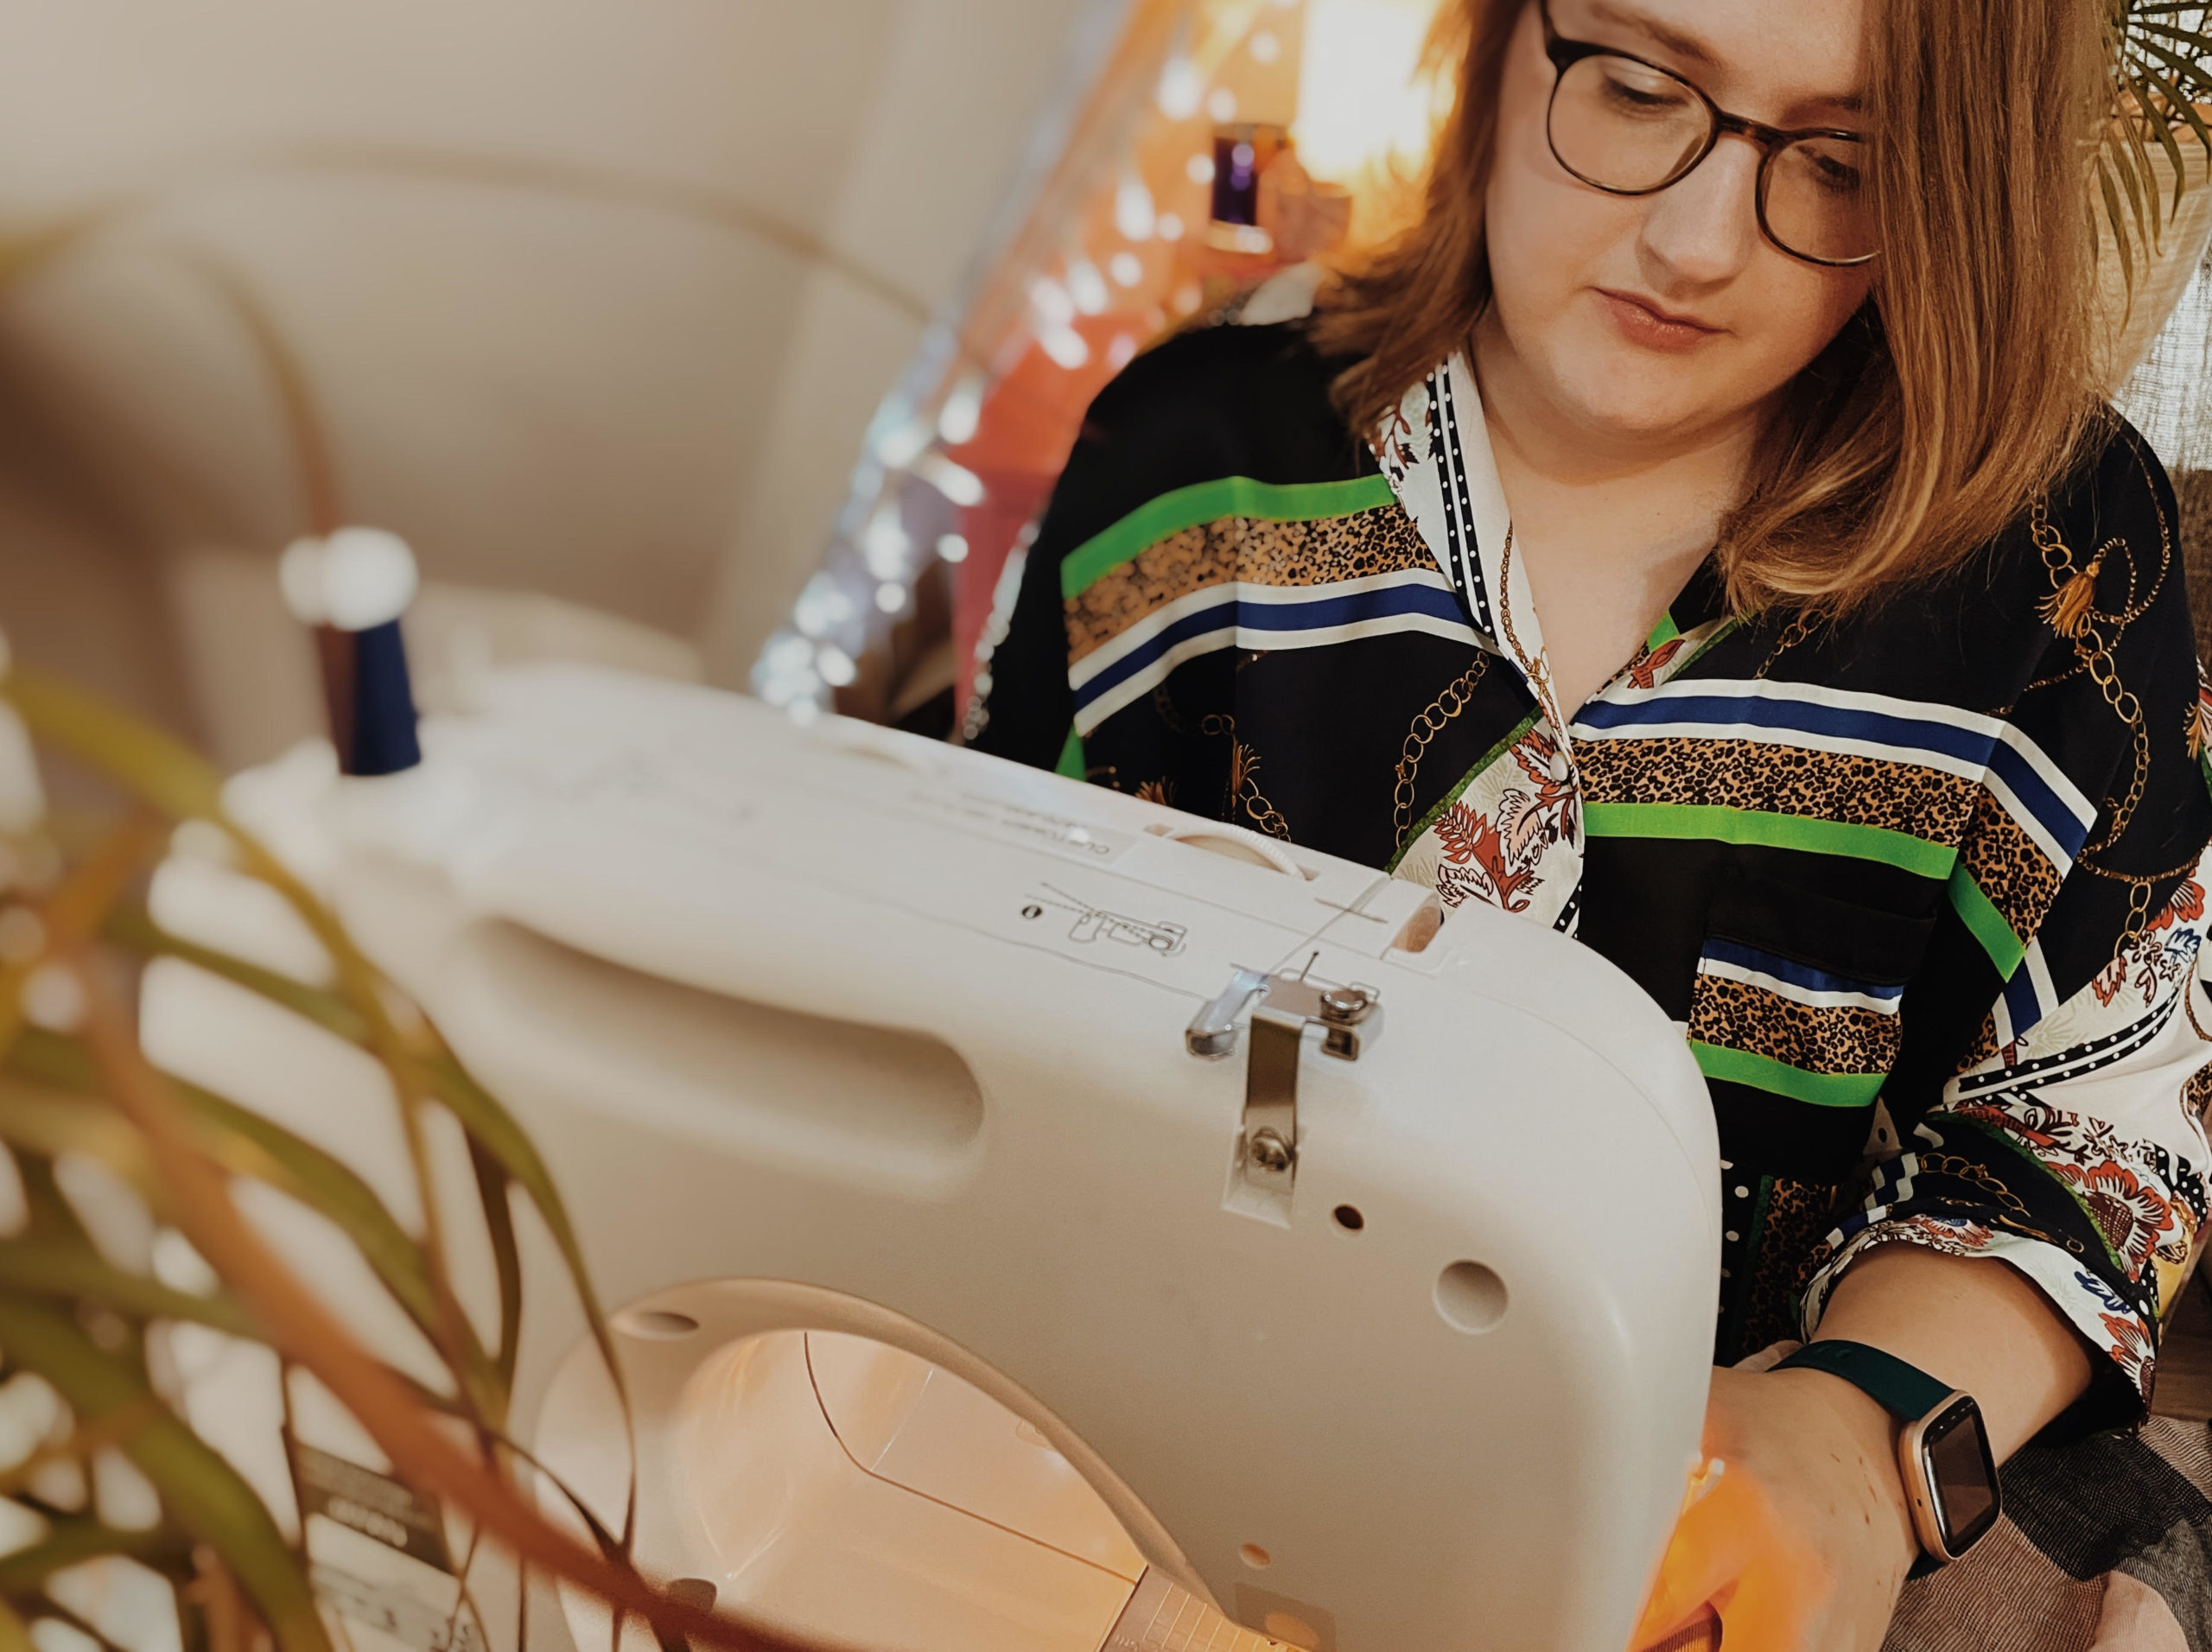 An image of Emma sitting at her sewing machine. Fairy lights add peaceful mood in the background.